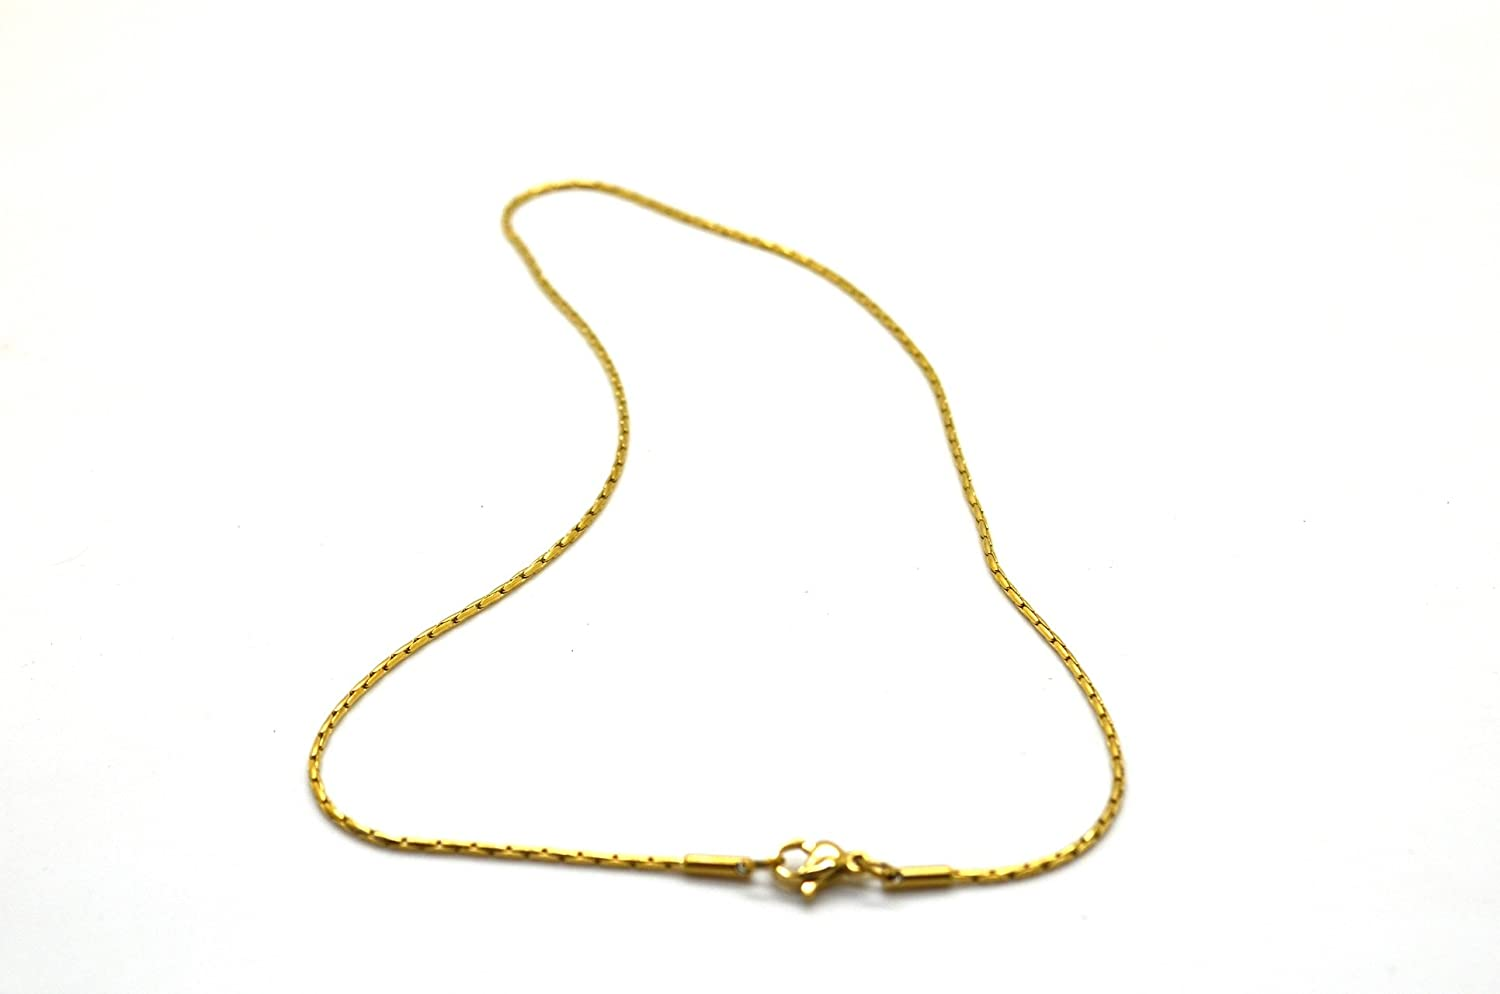 Chelsea Jewelry Basic Collections 1.2mm Wide 18K Gold Round Cleopatra Link Chain Necklace.